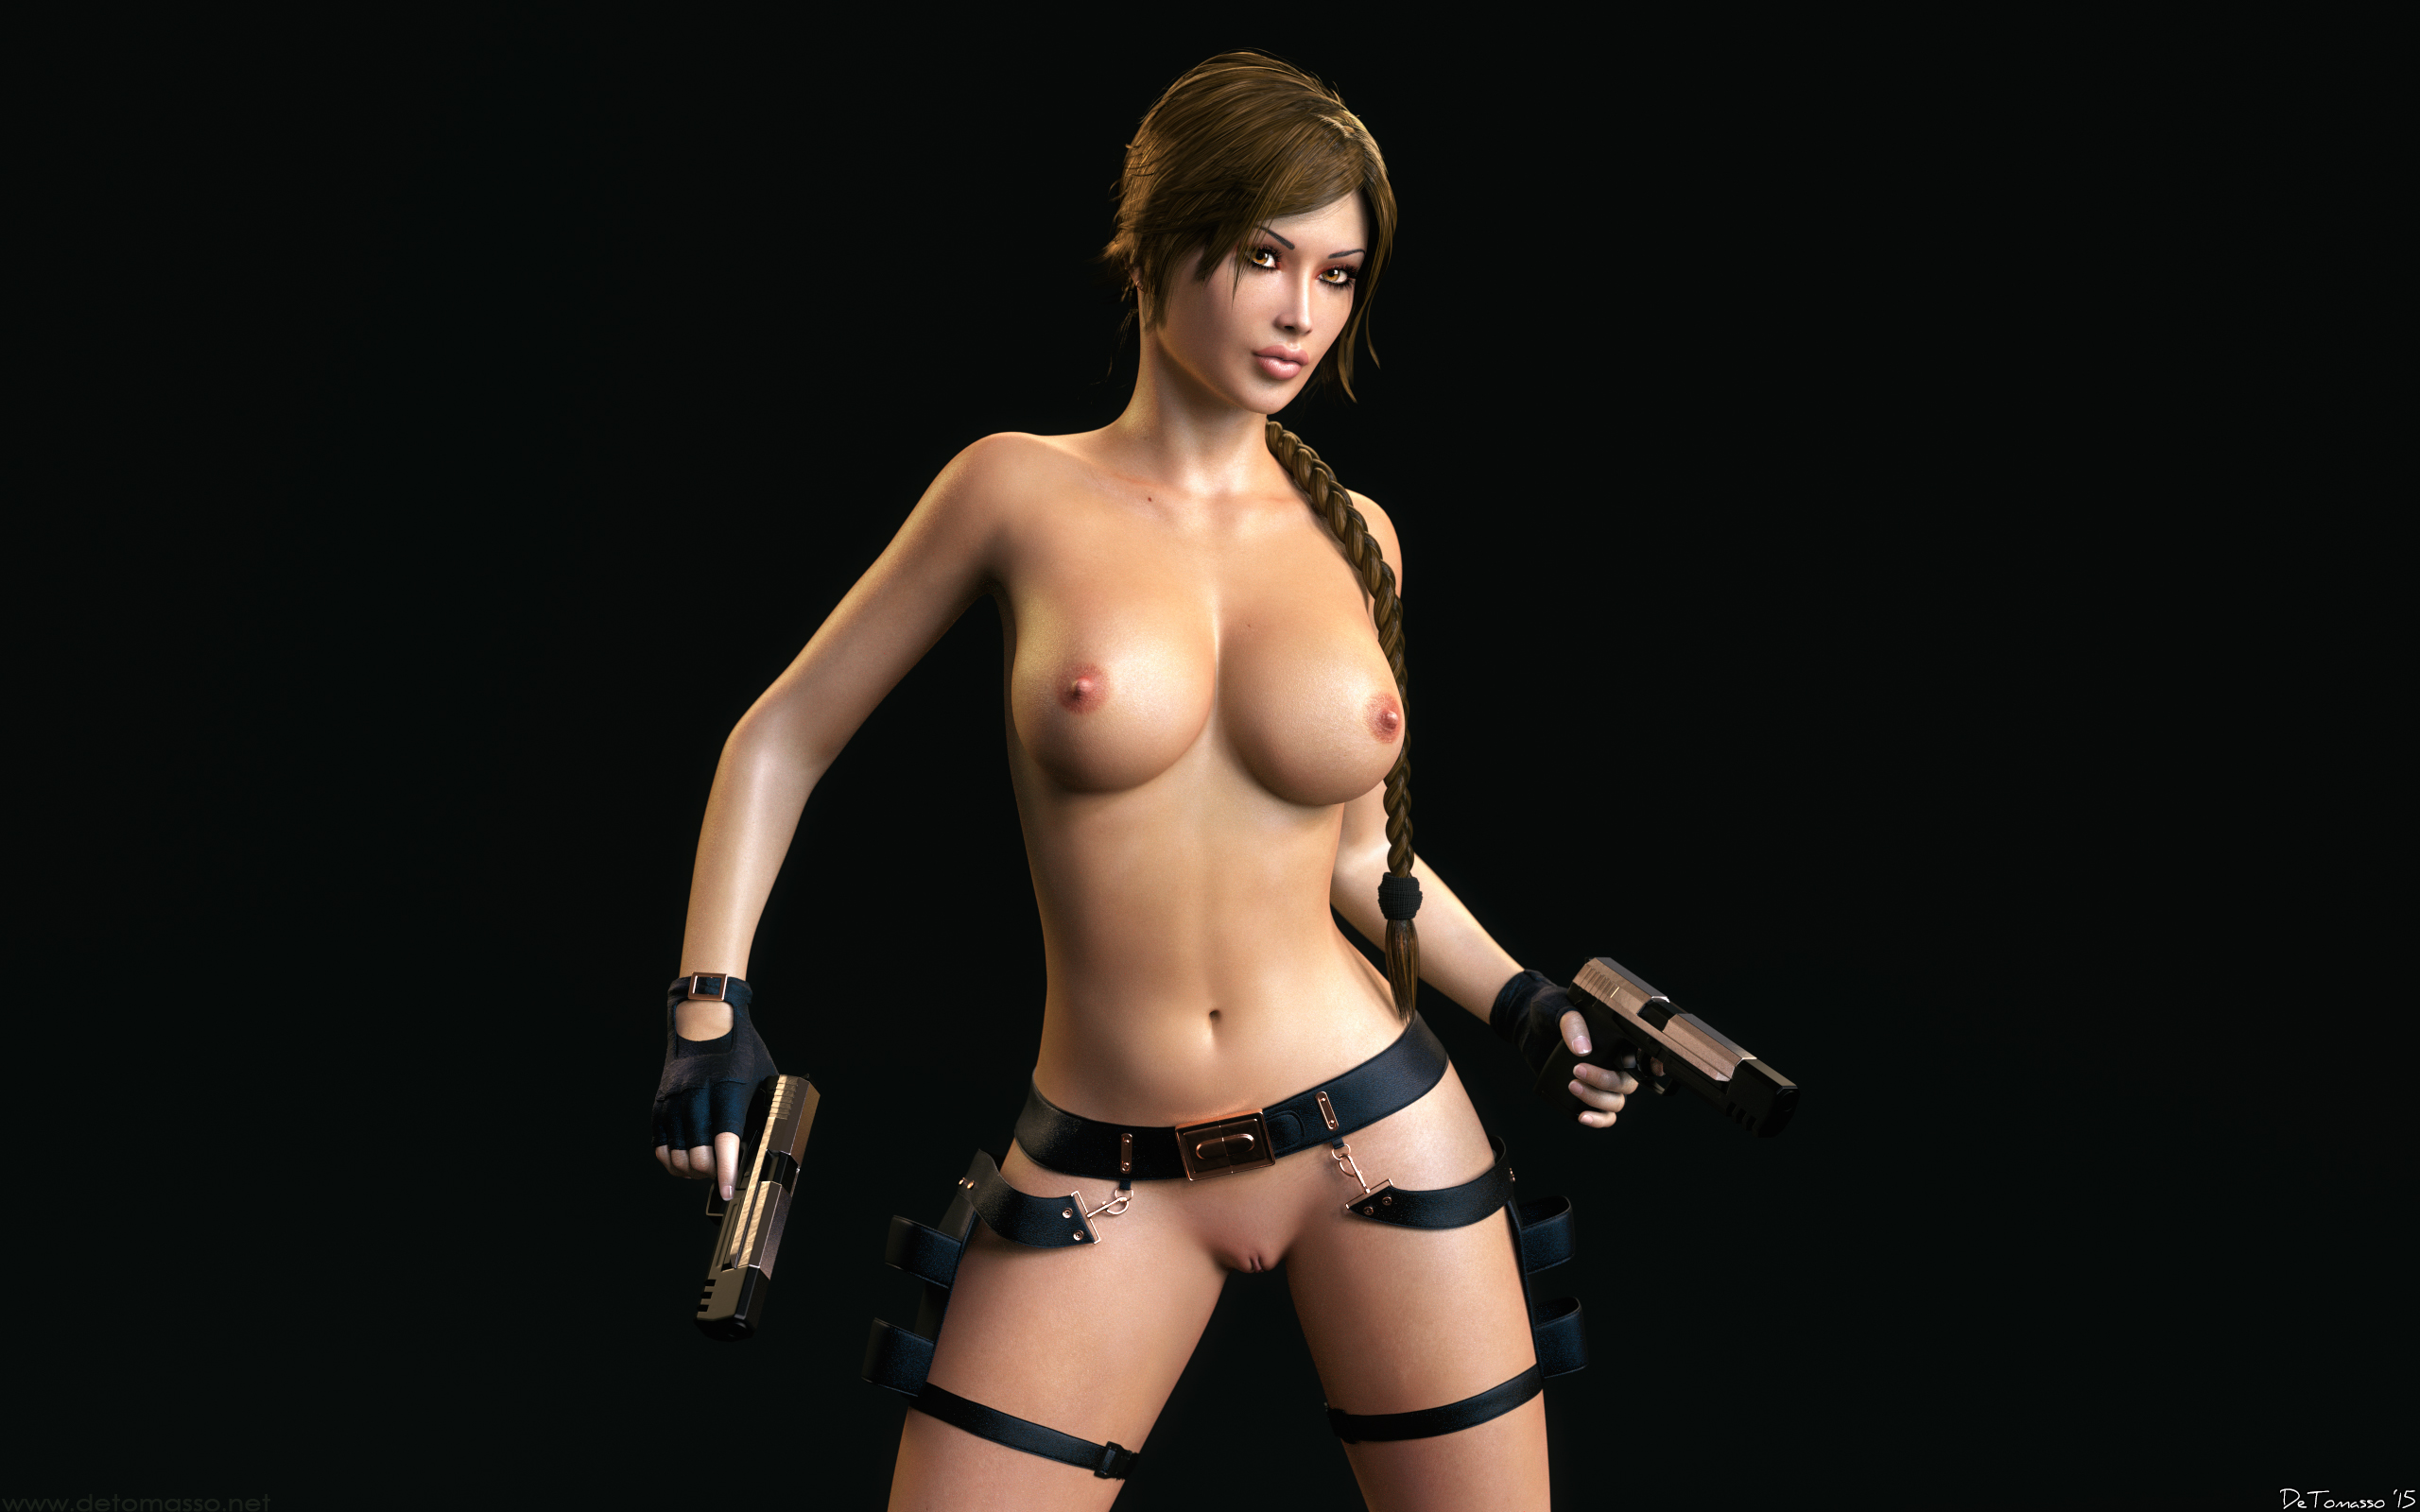 Sexy naked pics of lara croft nsfw nasty chick